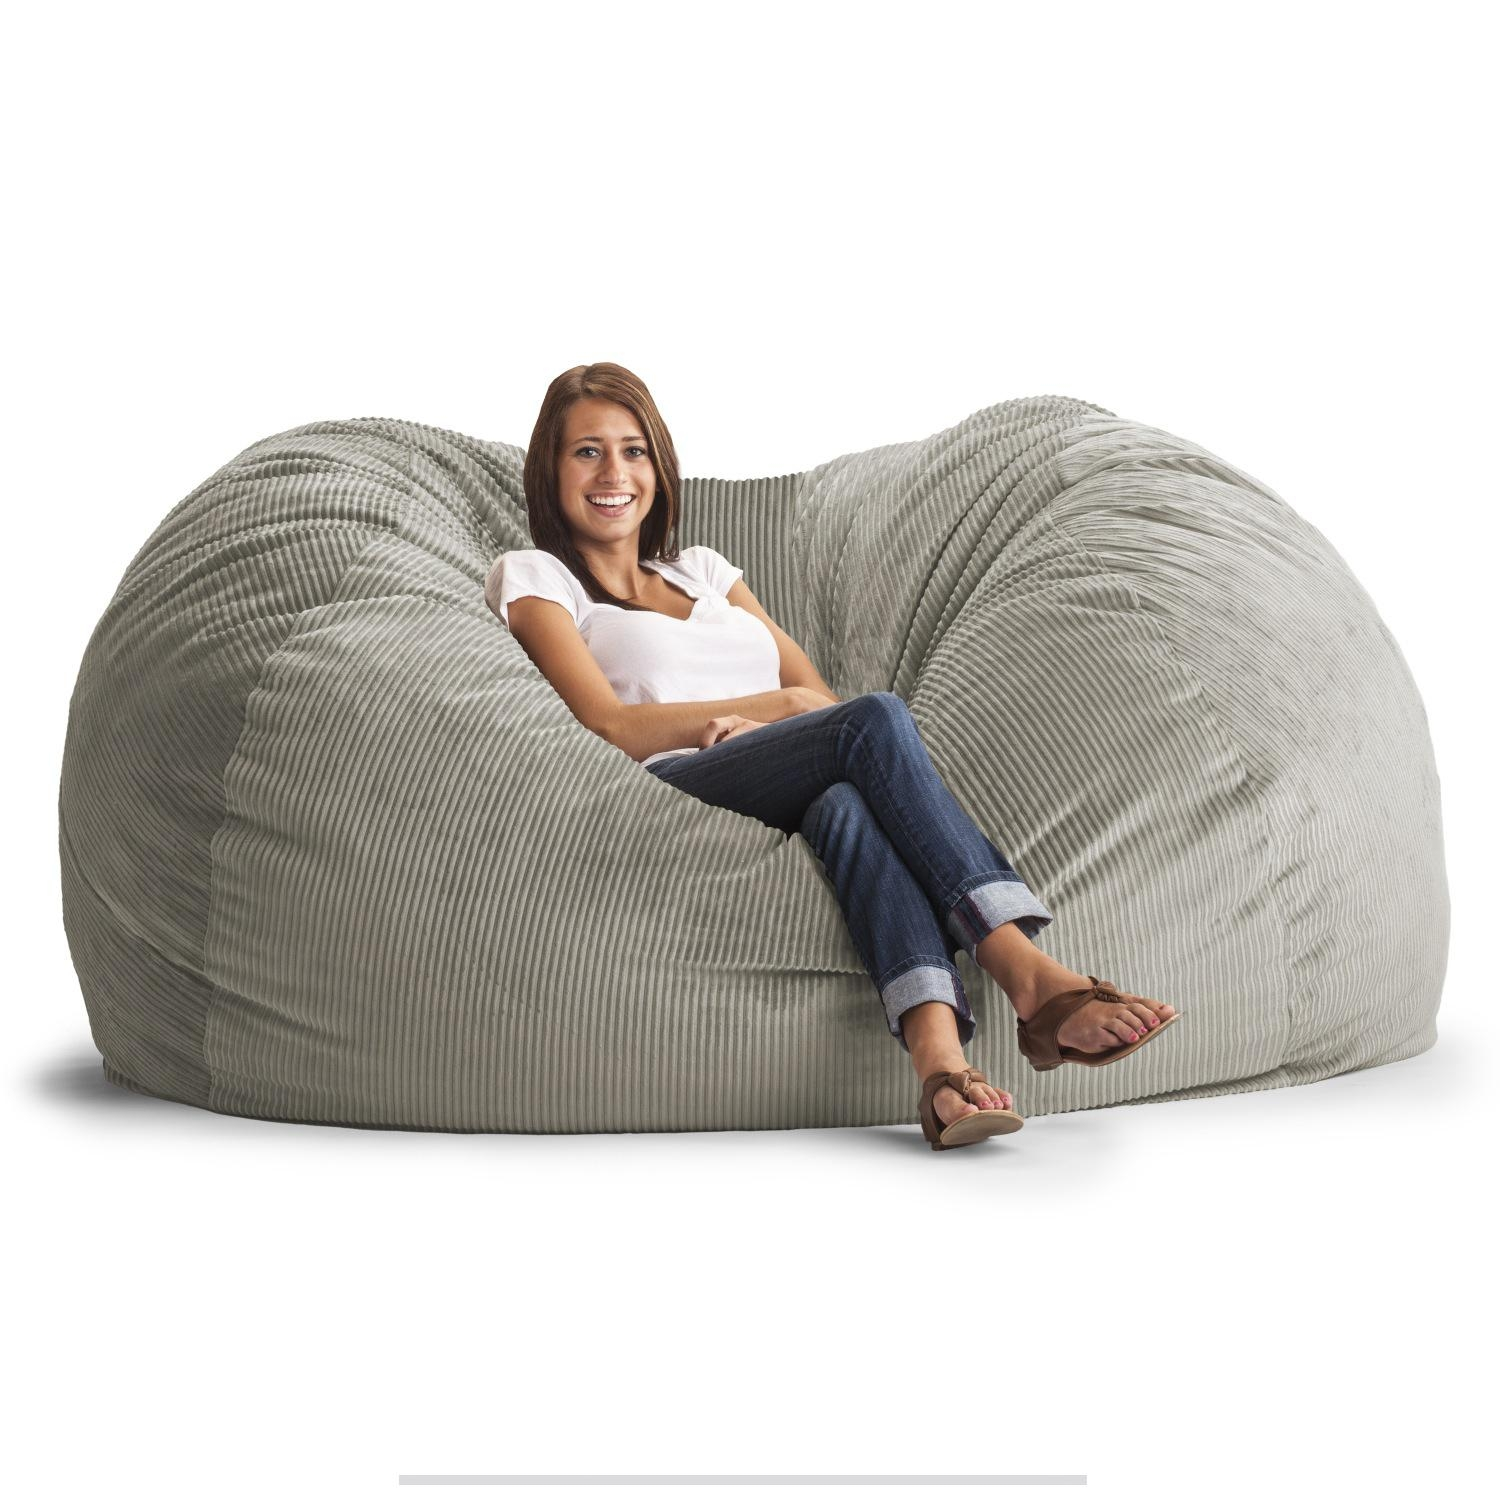 Furniture & Sofa: Fascinating Big Joe Lumin Bean Bag Chair With Inside Big Joe Sofas (Image 15 of 20)